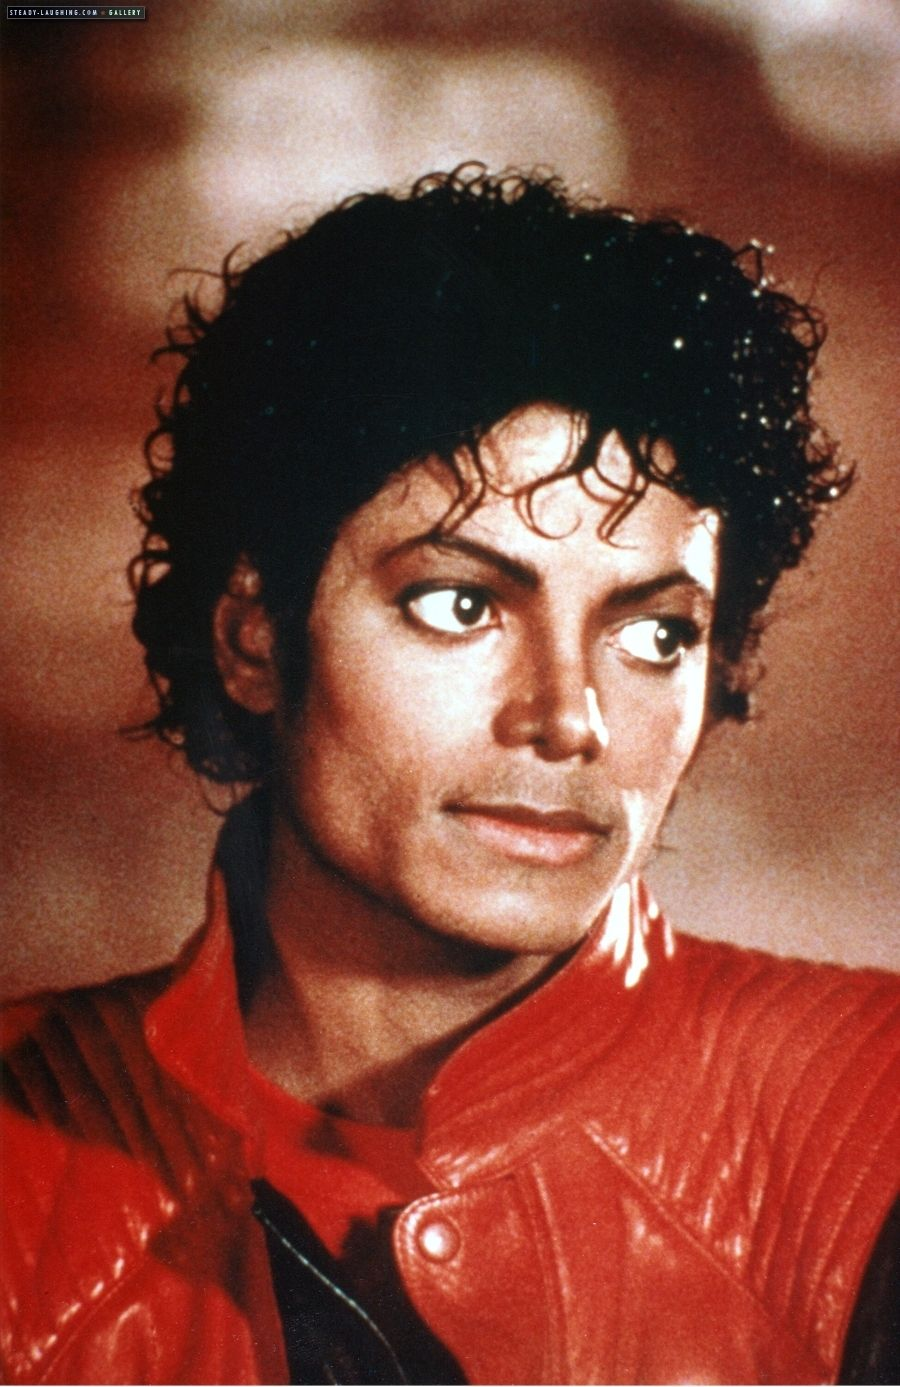 Michael Jackson Thriller Wallpaper Wallpapersafari